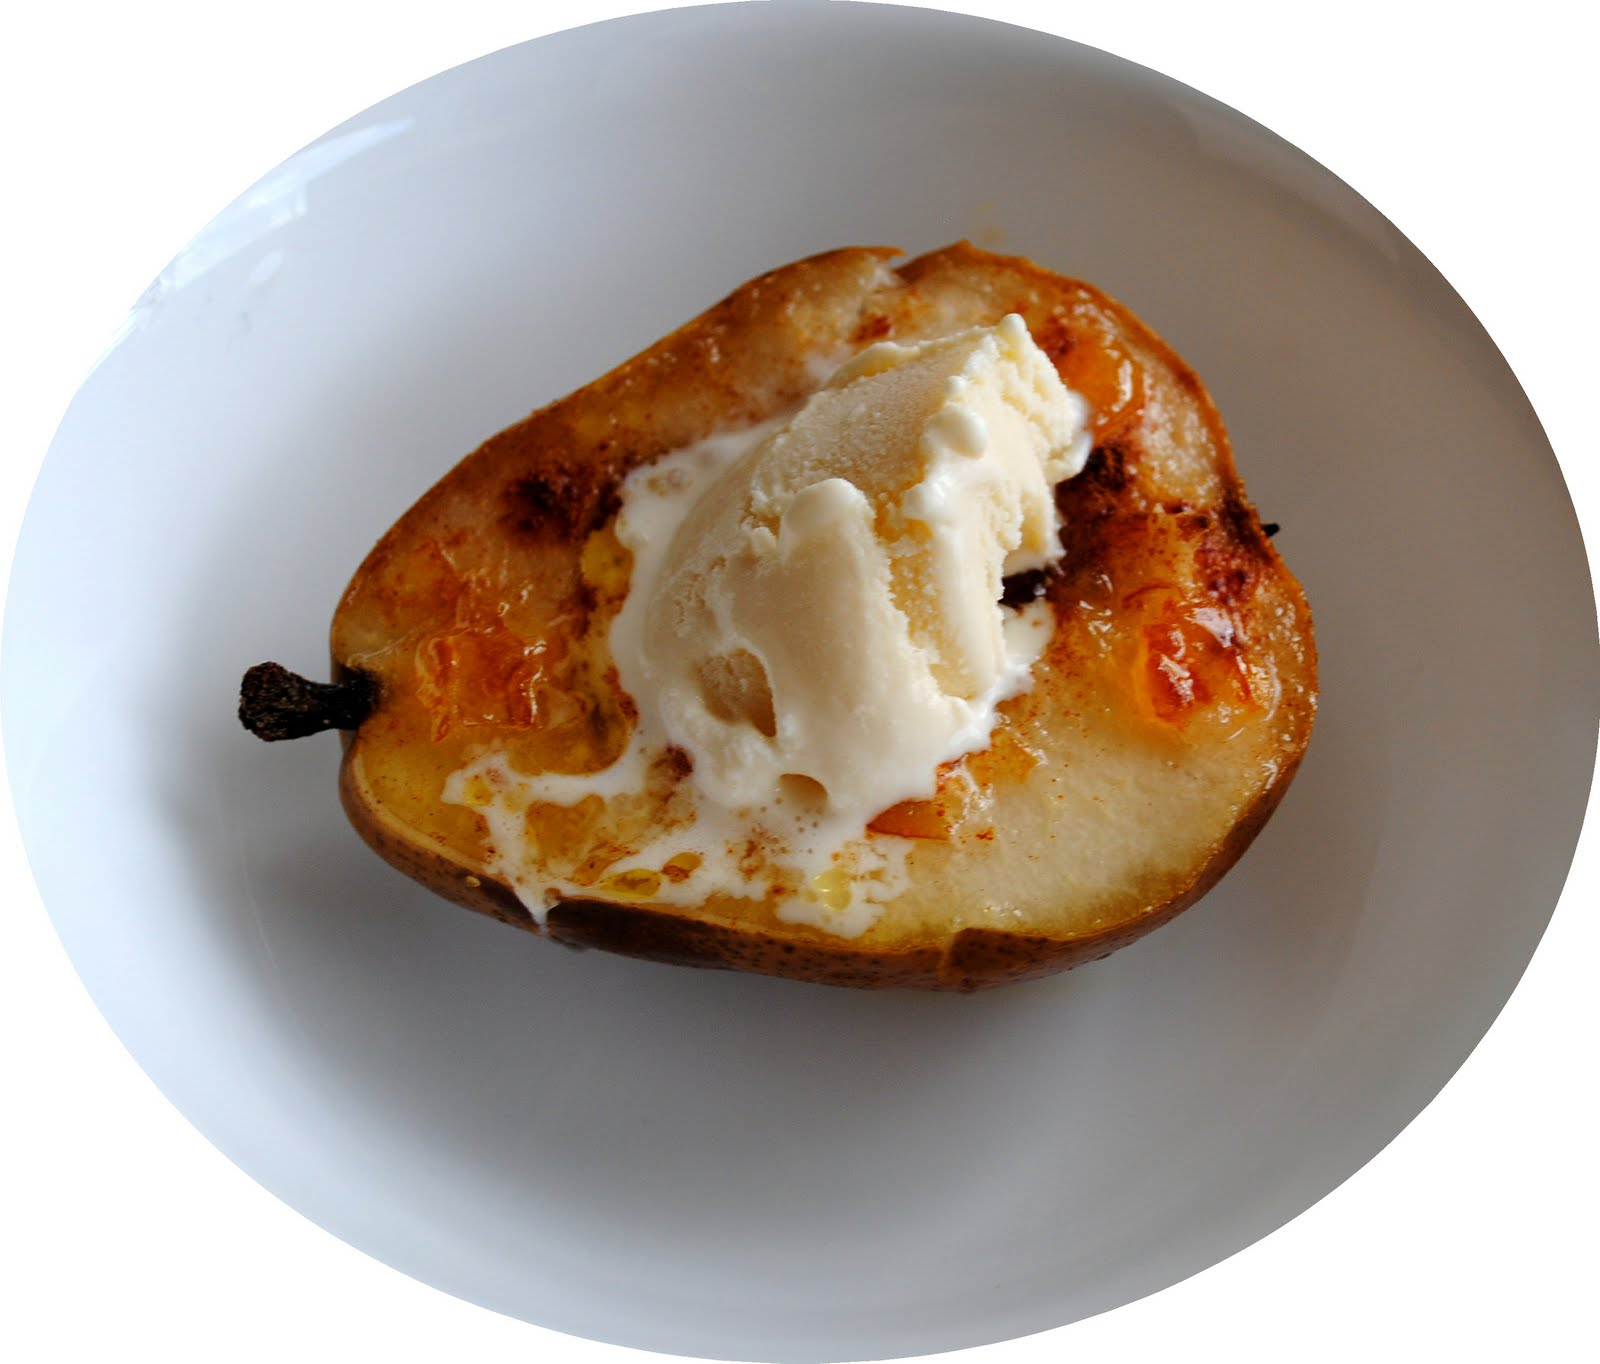 Baked Pears with Vanilla Ice Cream - Learning Patience